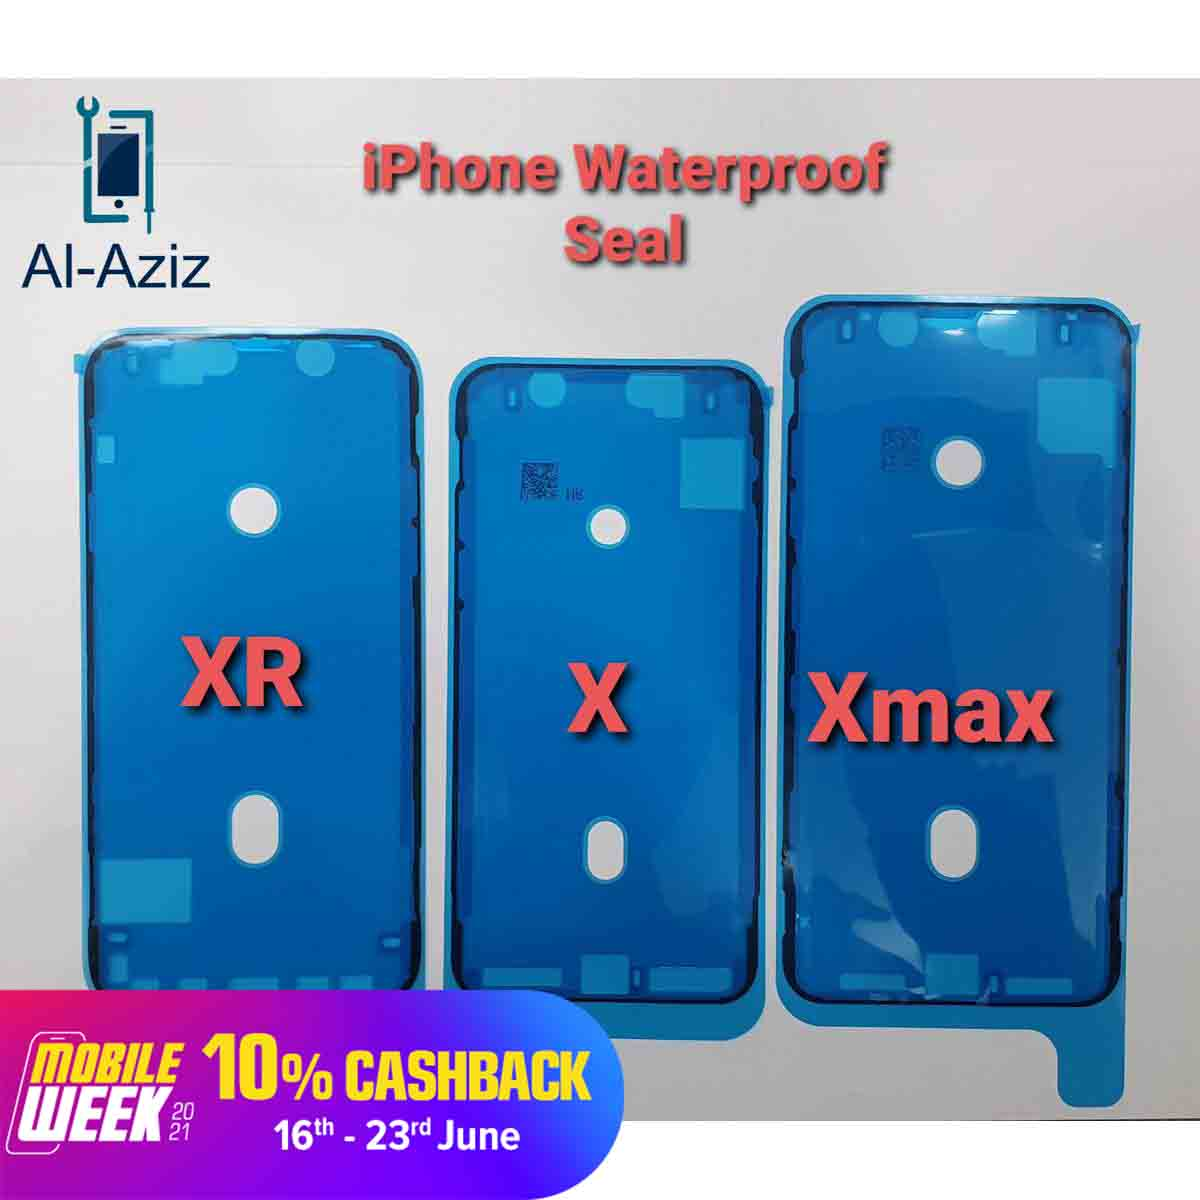 2pieces WaterProof Seal Adhesive Sticker For Apple iPhone 7G / 7Plus / 8G / 8Plus X / XS / XR / XS MAX / 11 / 11Pro / 11Pro Max